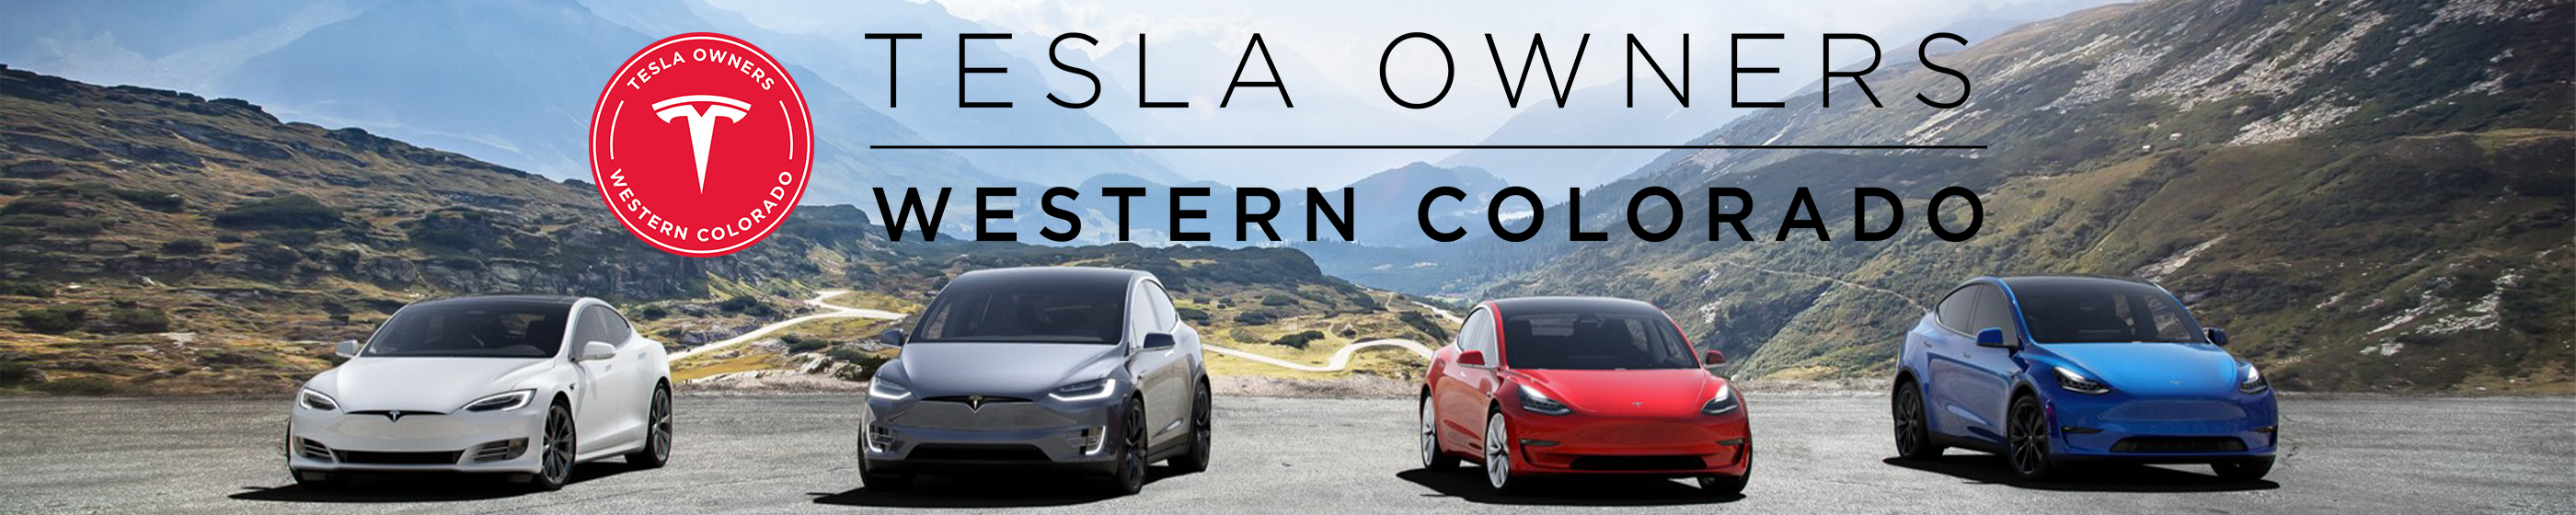 Western Colorado Tesla Club